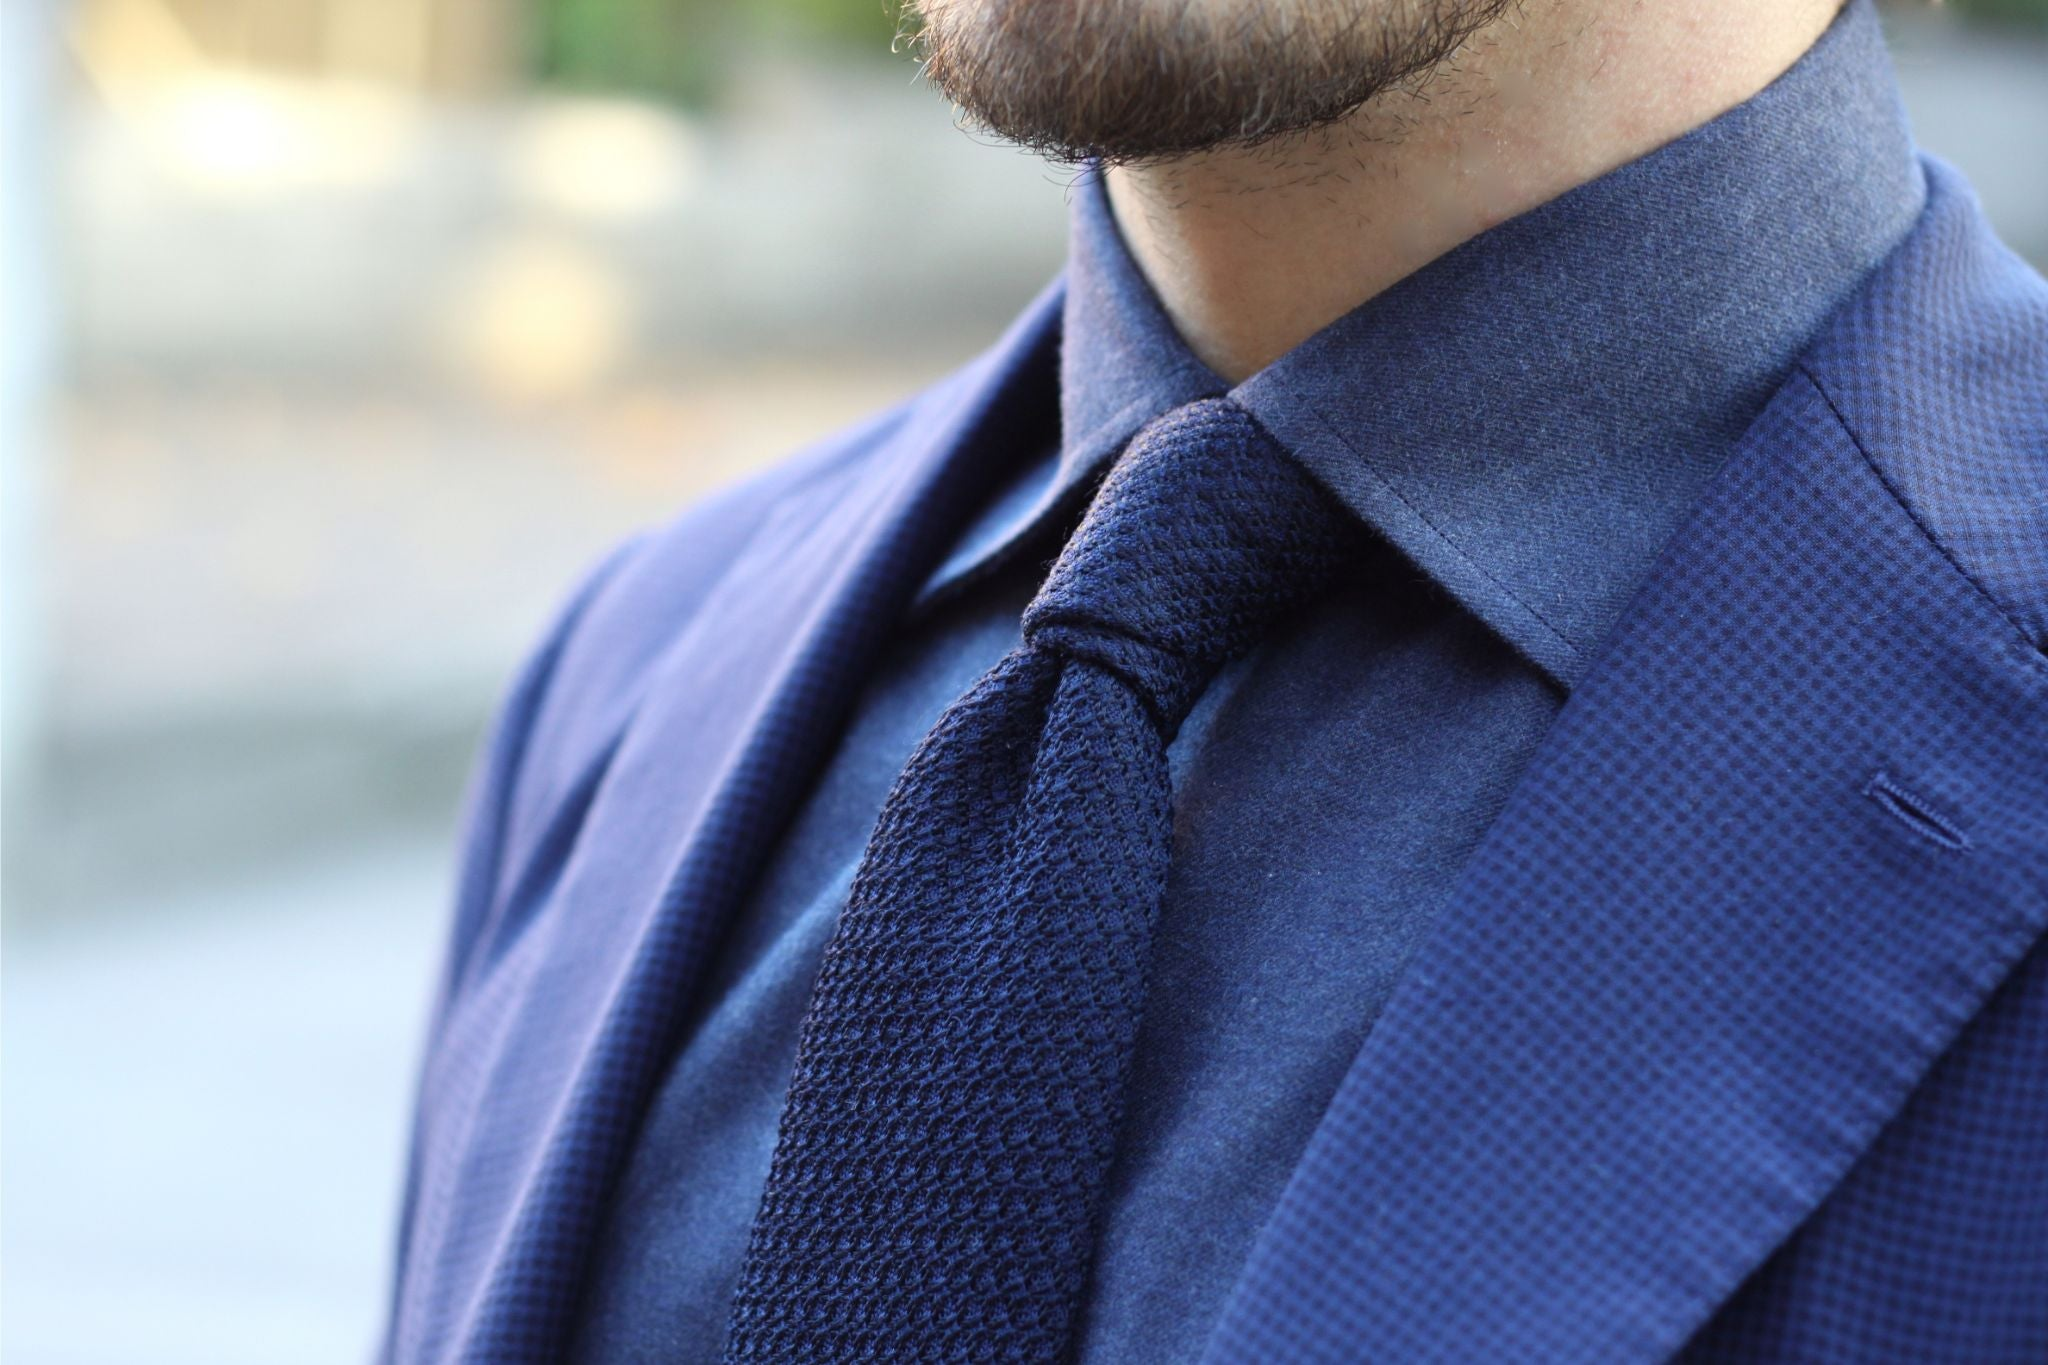 What color tie goes with a dark blue shirt